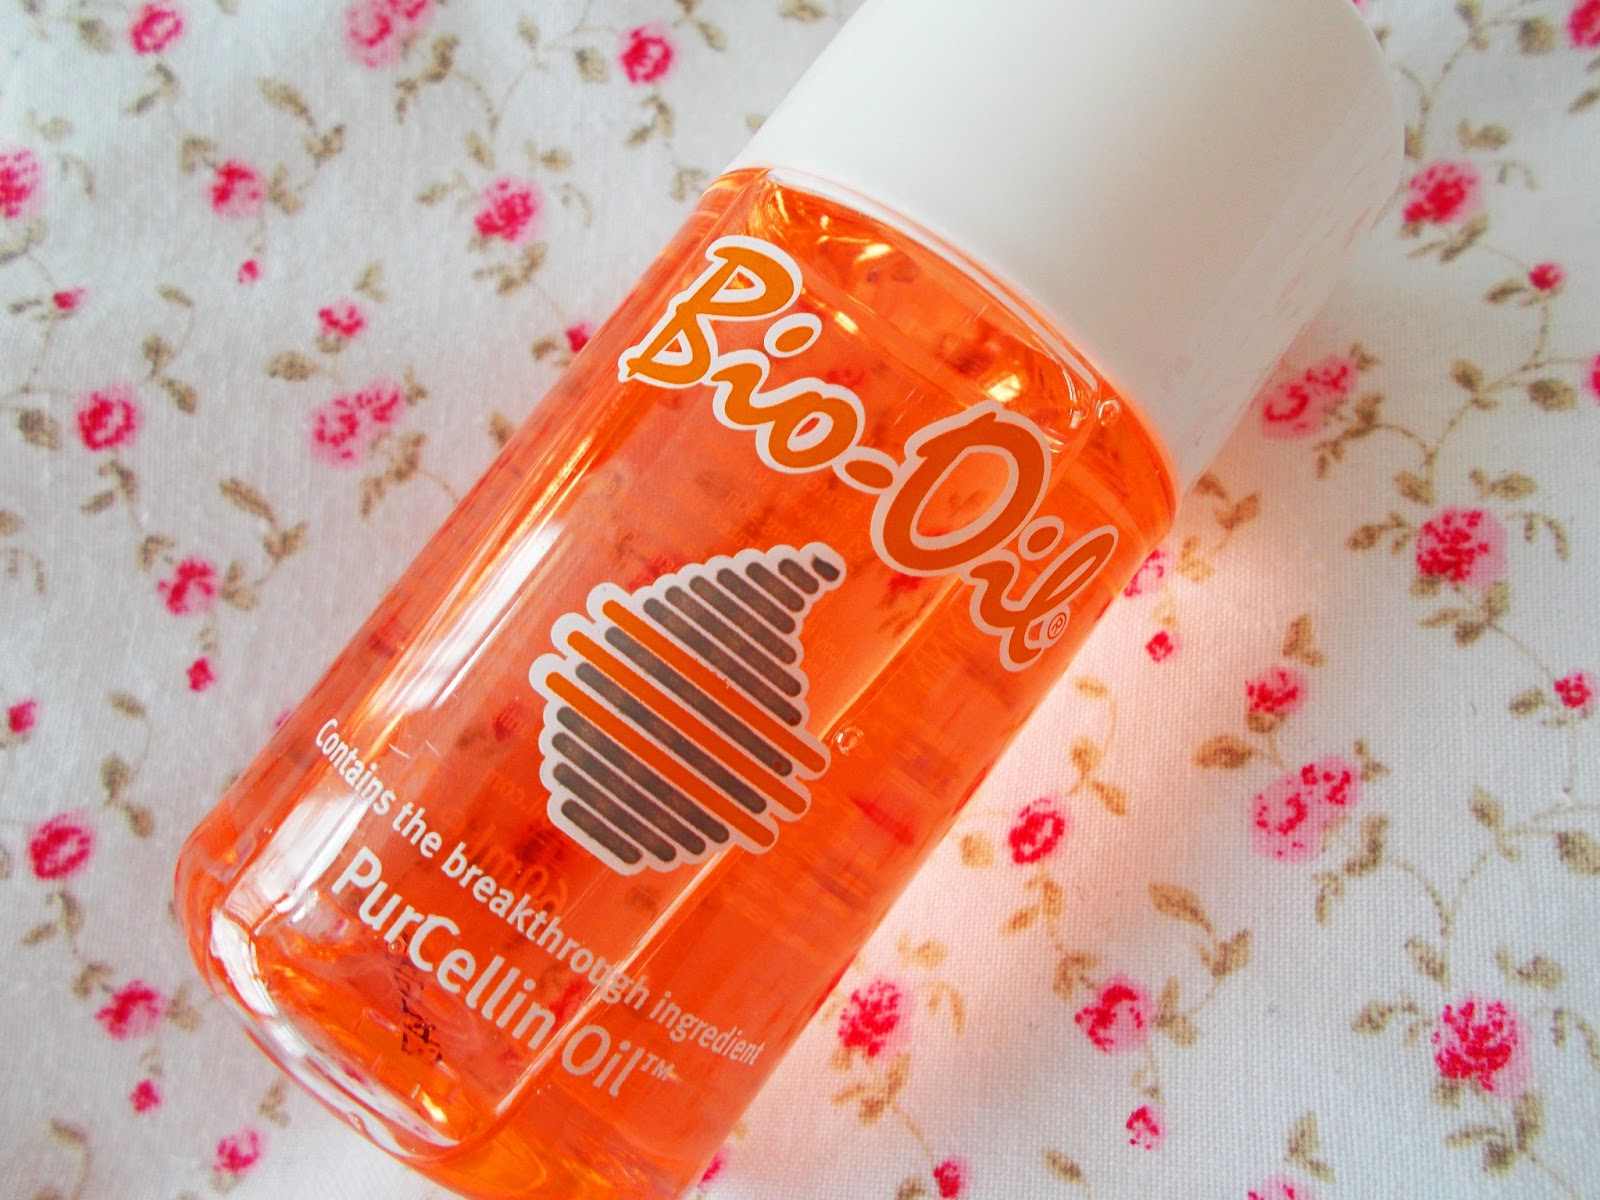 My thoughts on Bio Oil